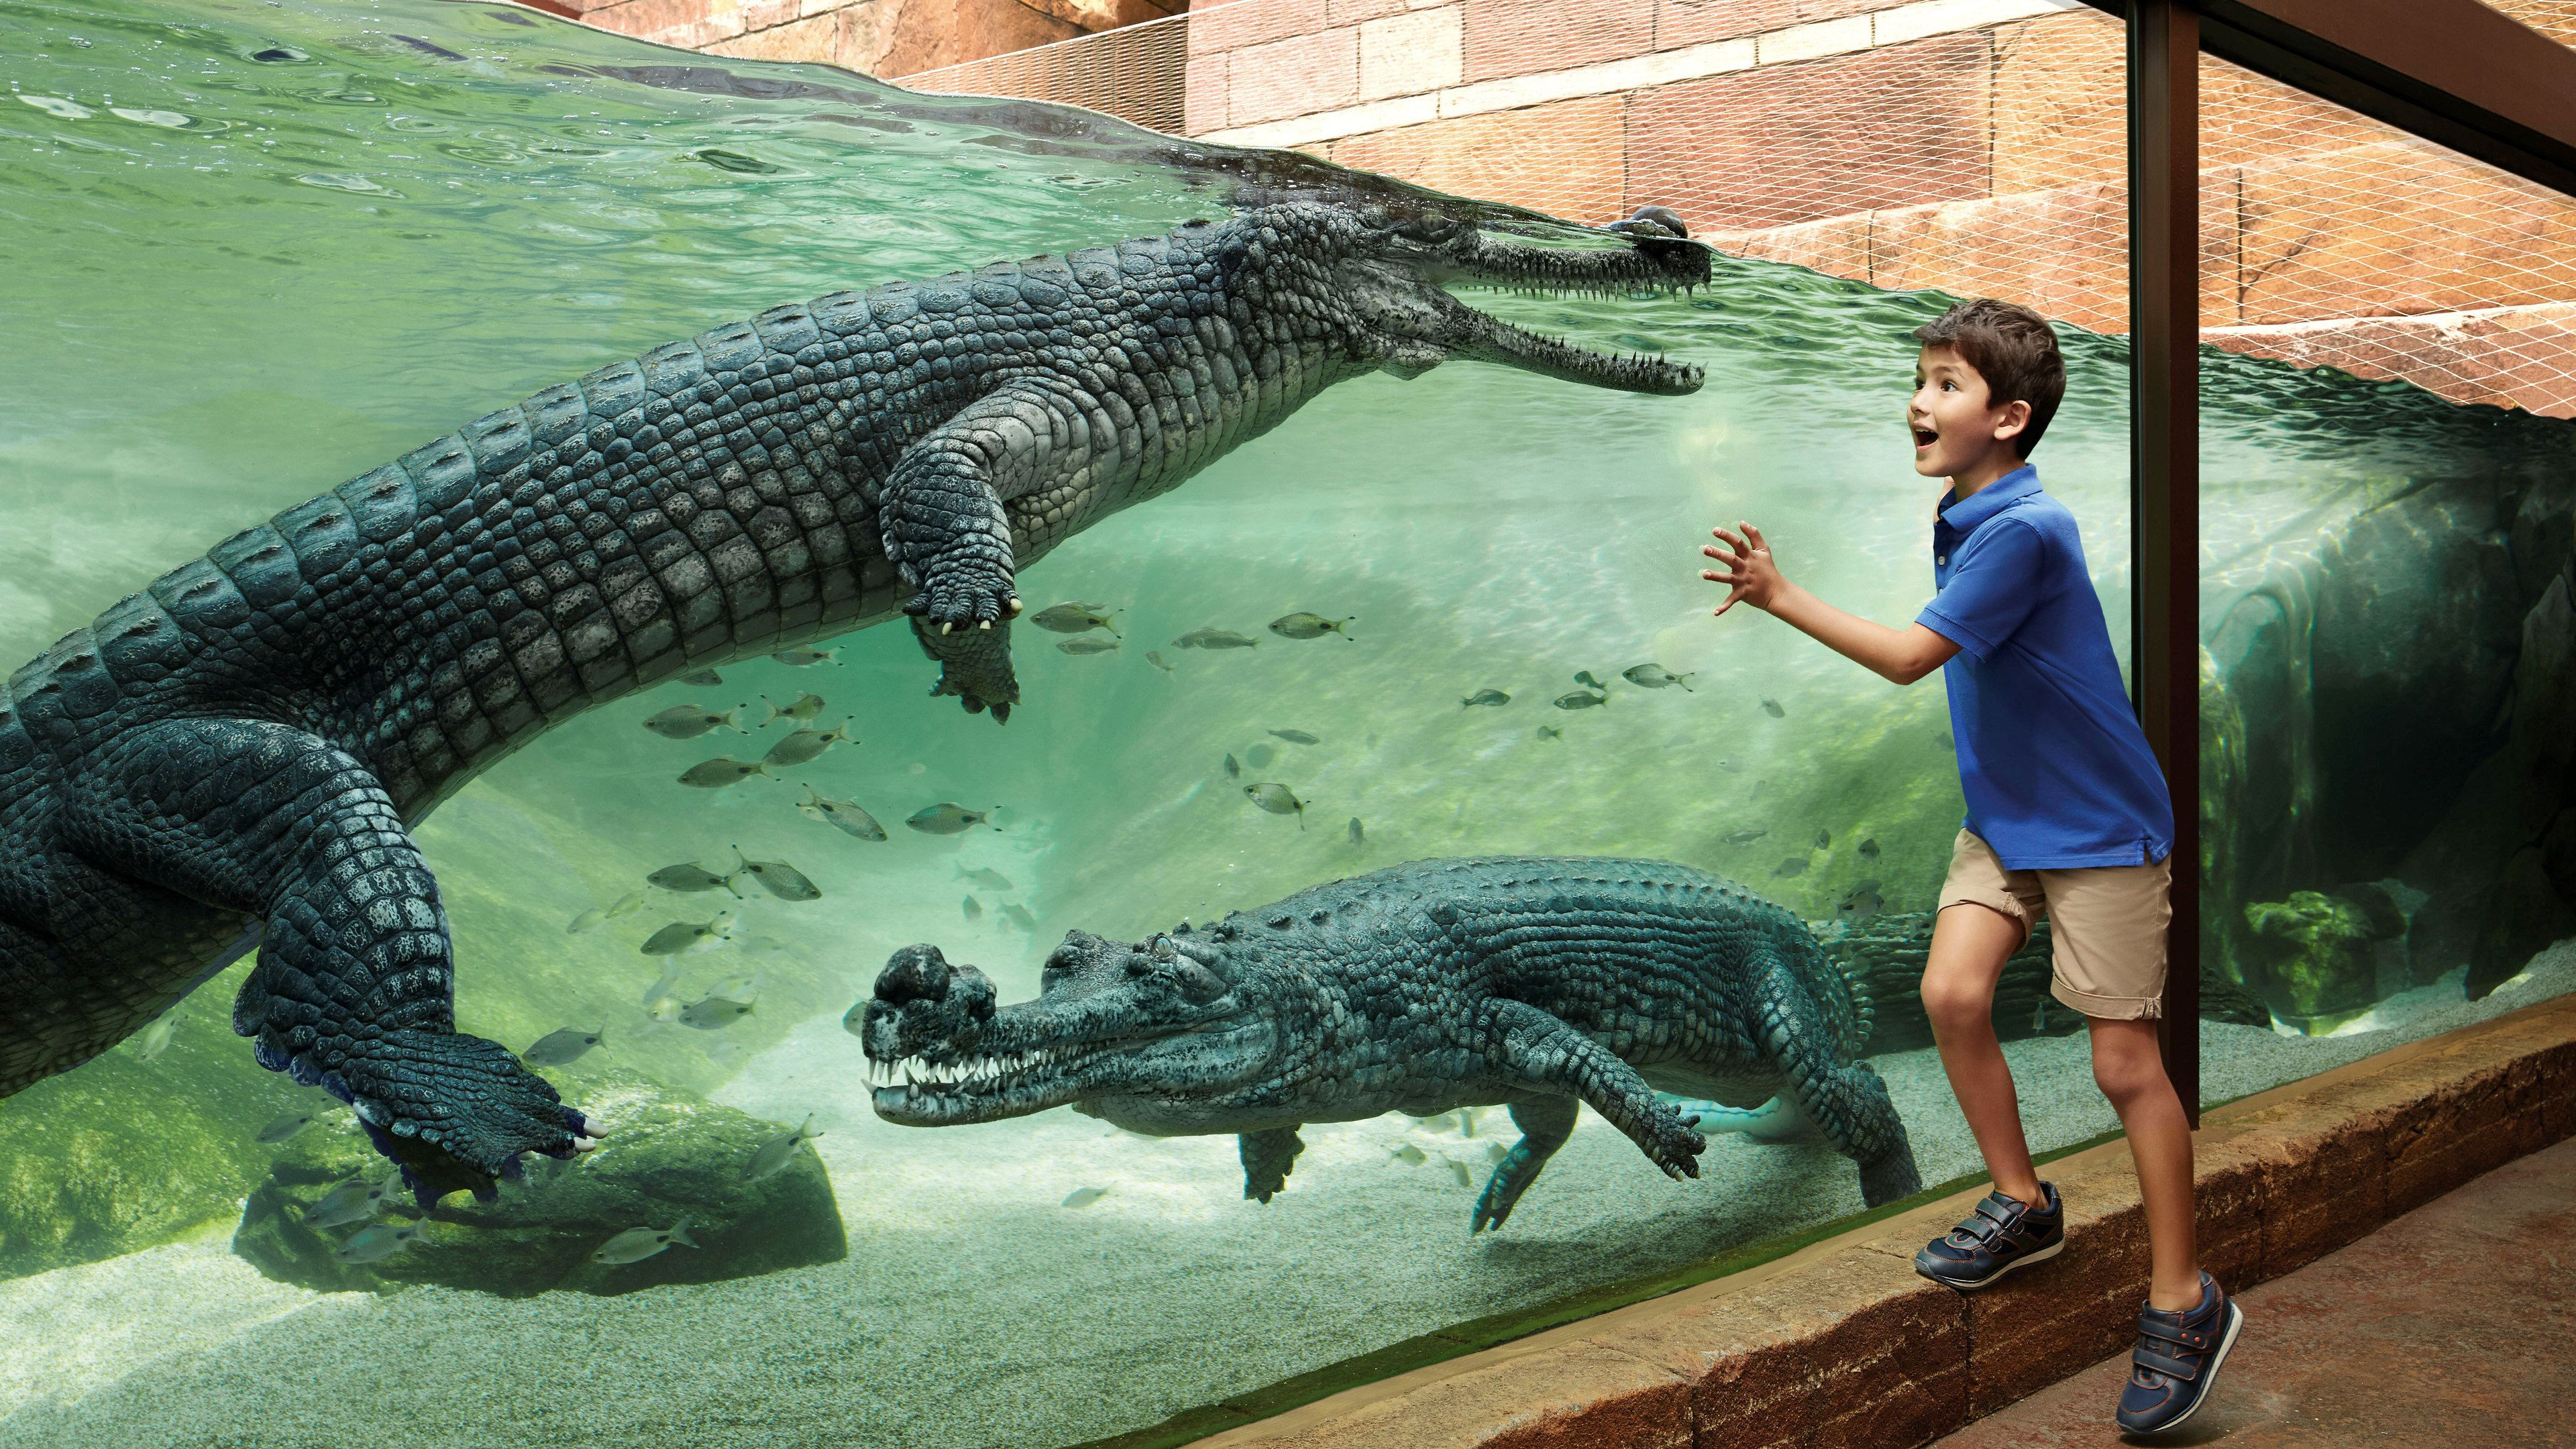 Young boy looking at alligators in a tank